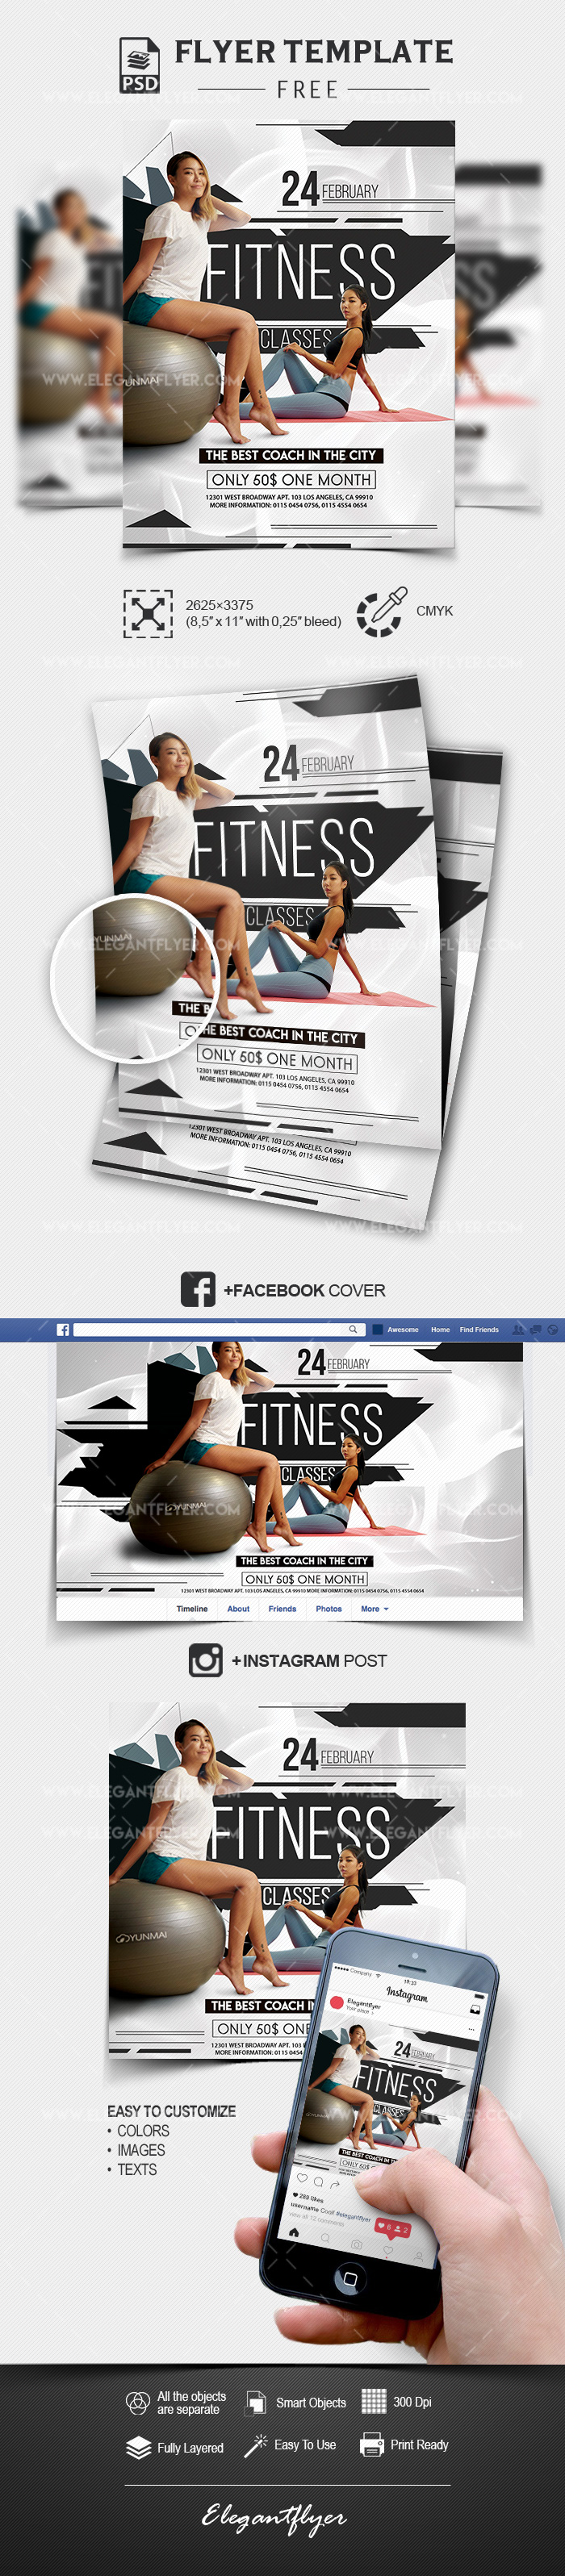 Fitness Classes – Free PSD Flyer Template + Facebook Cover + Instagram Post